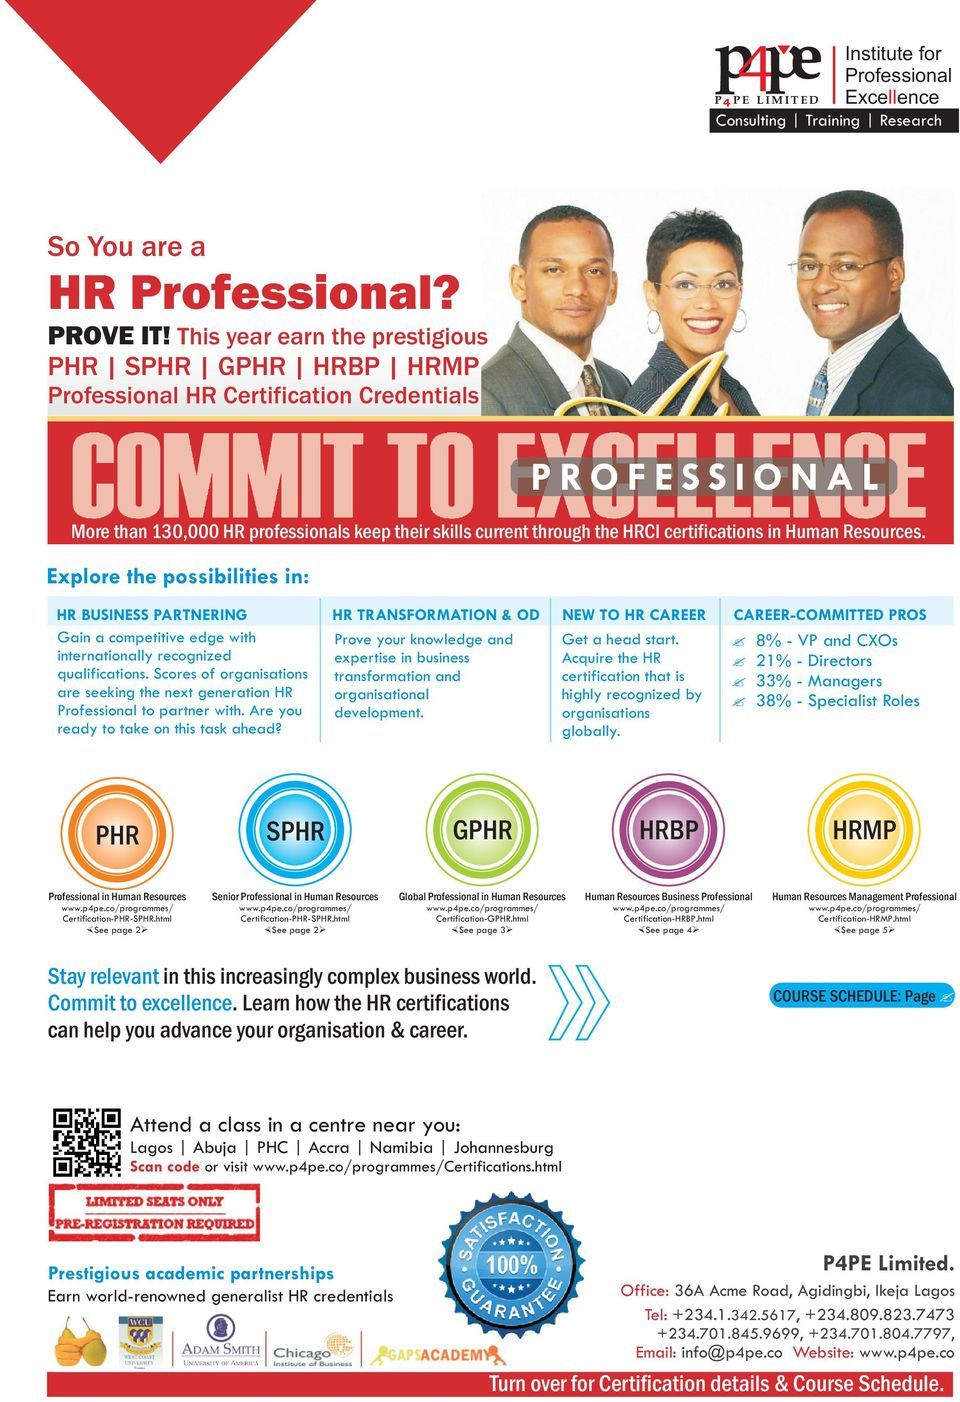 through the HRCI certifications in Human Resources.